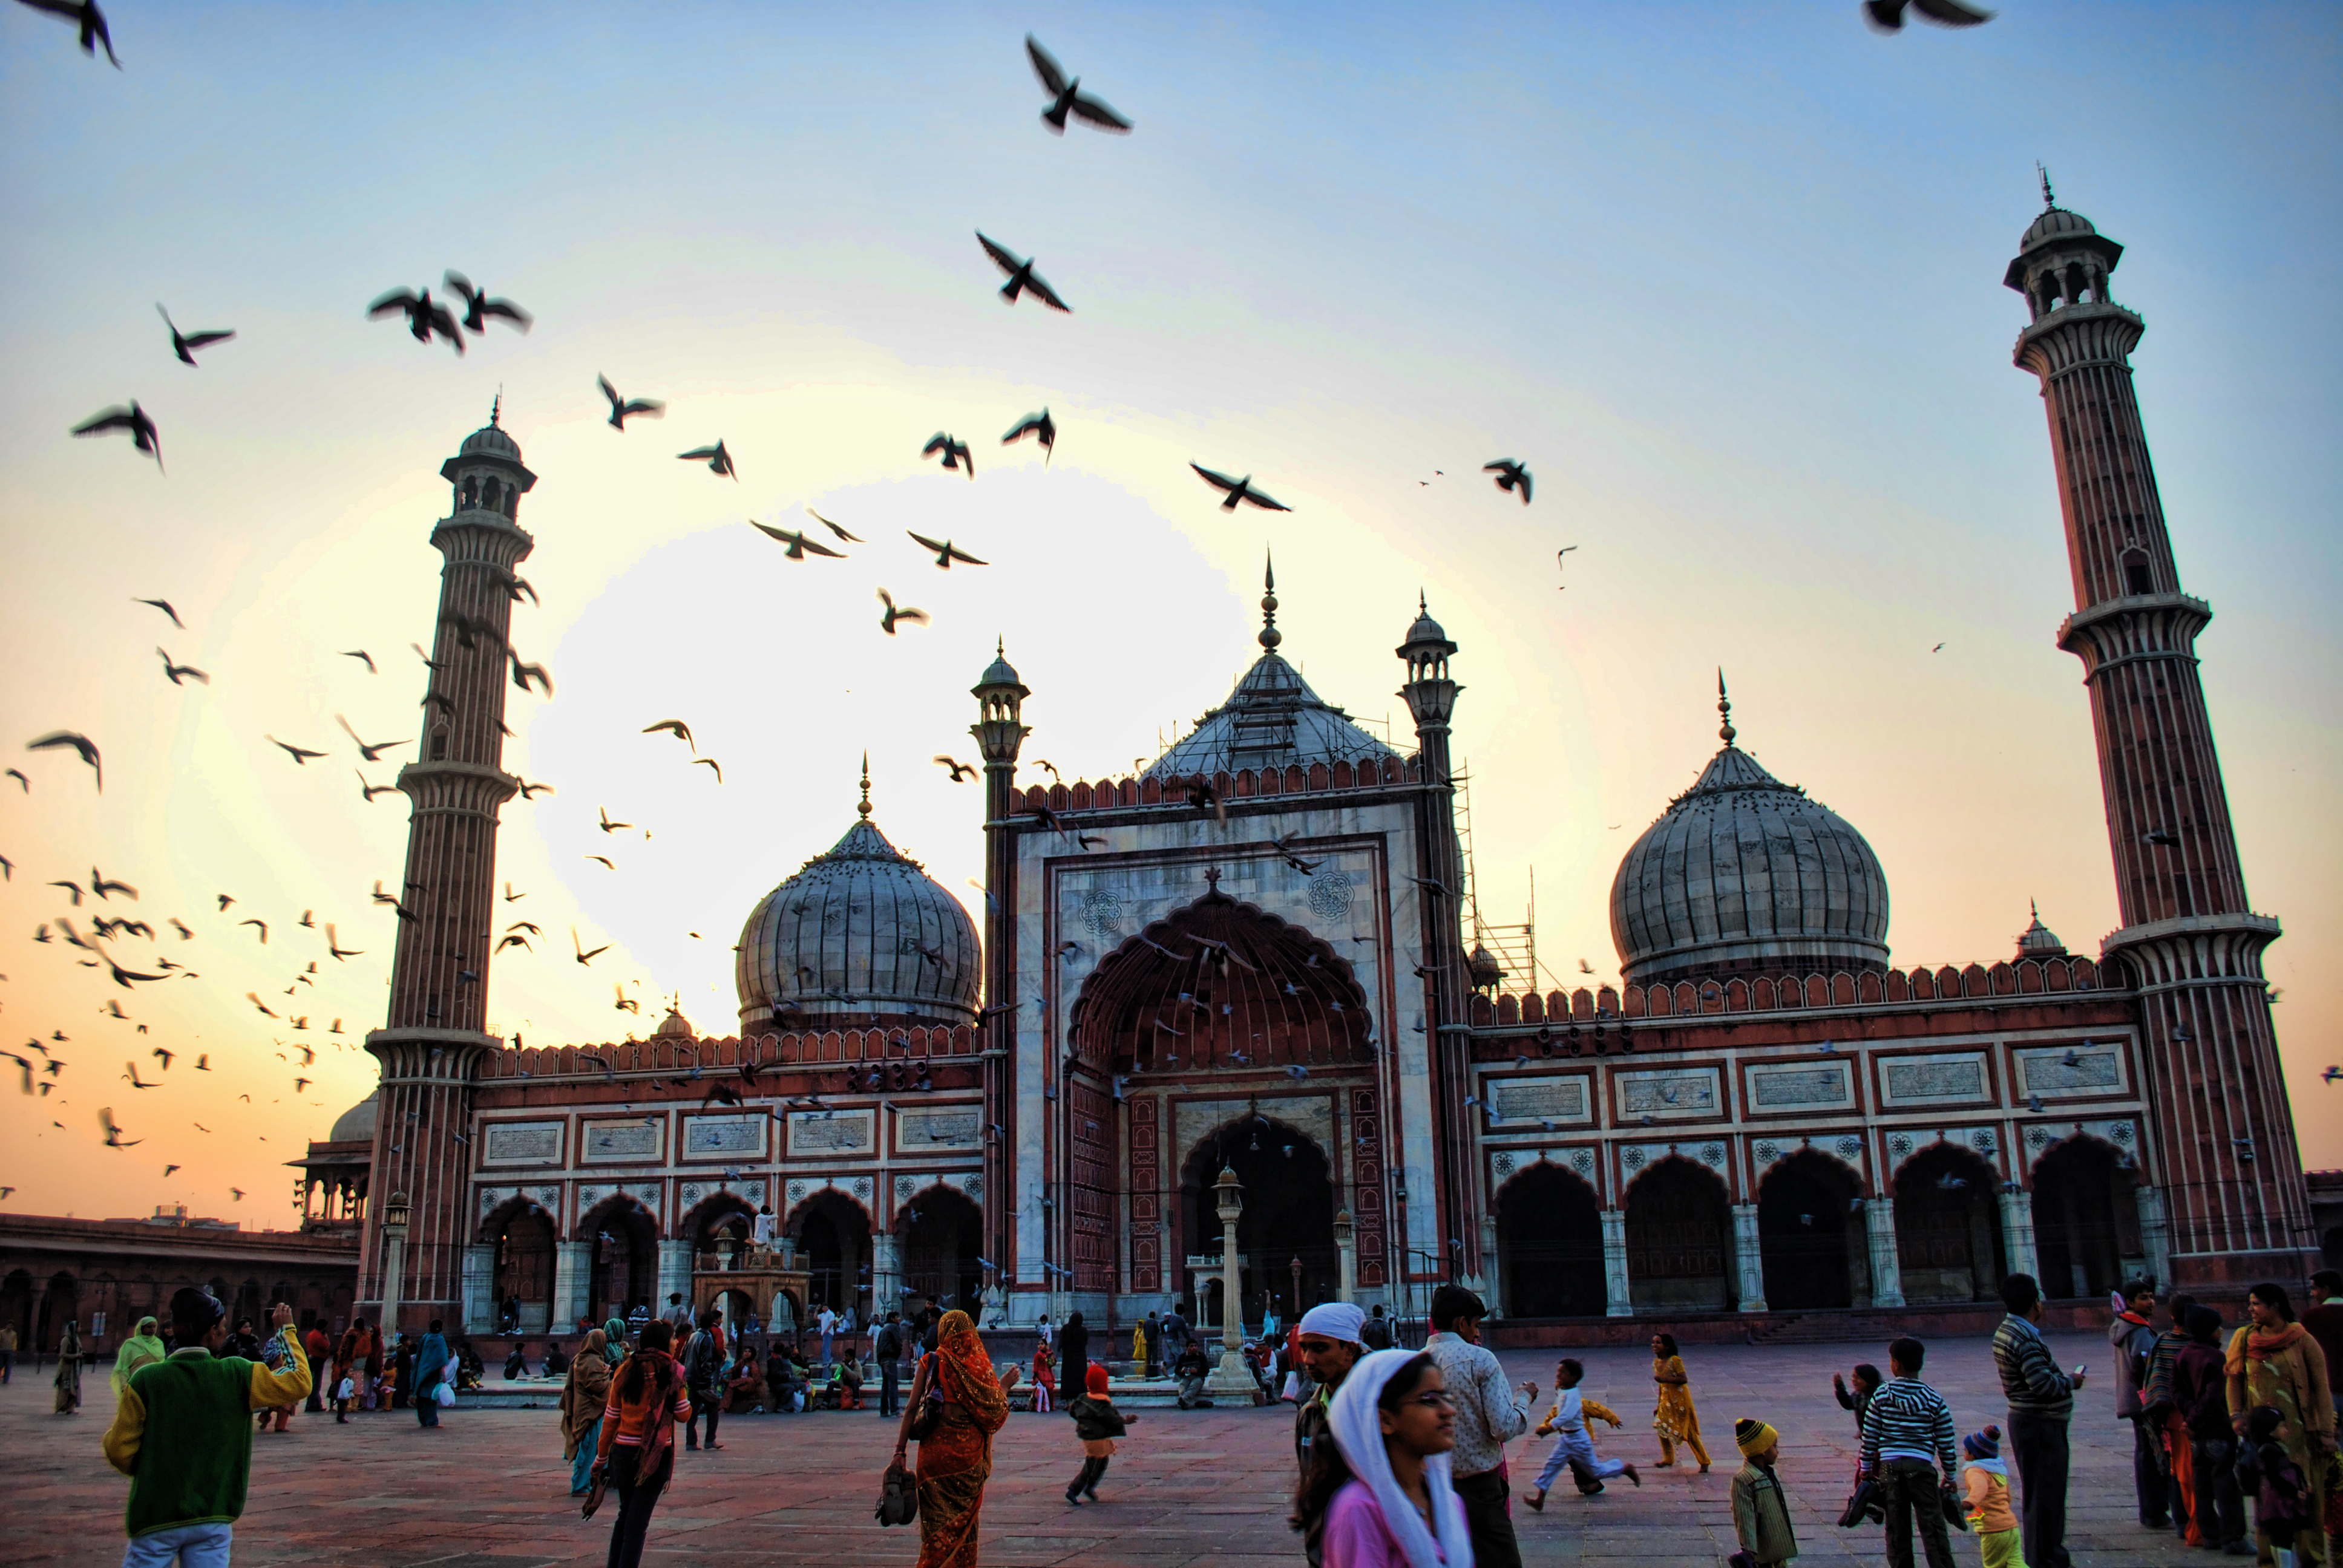 Jama masjid is one the biggest mosques in Asia; Image credit